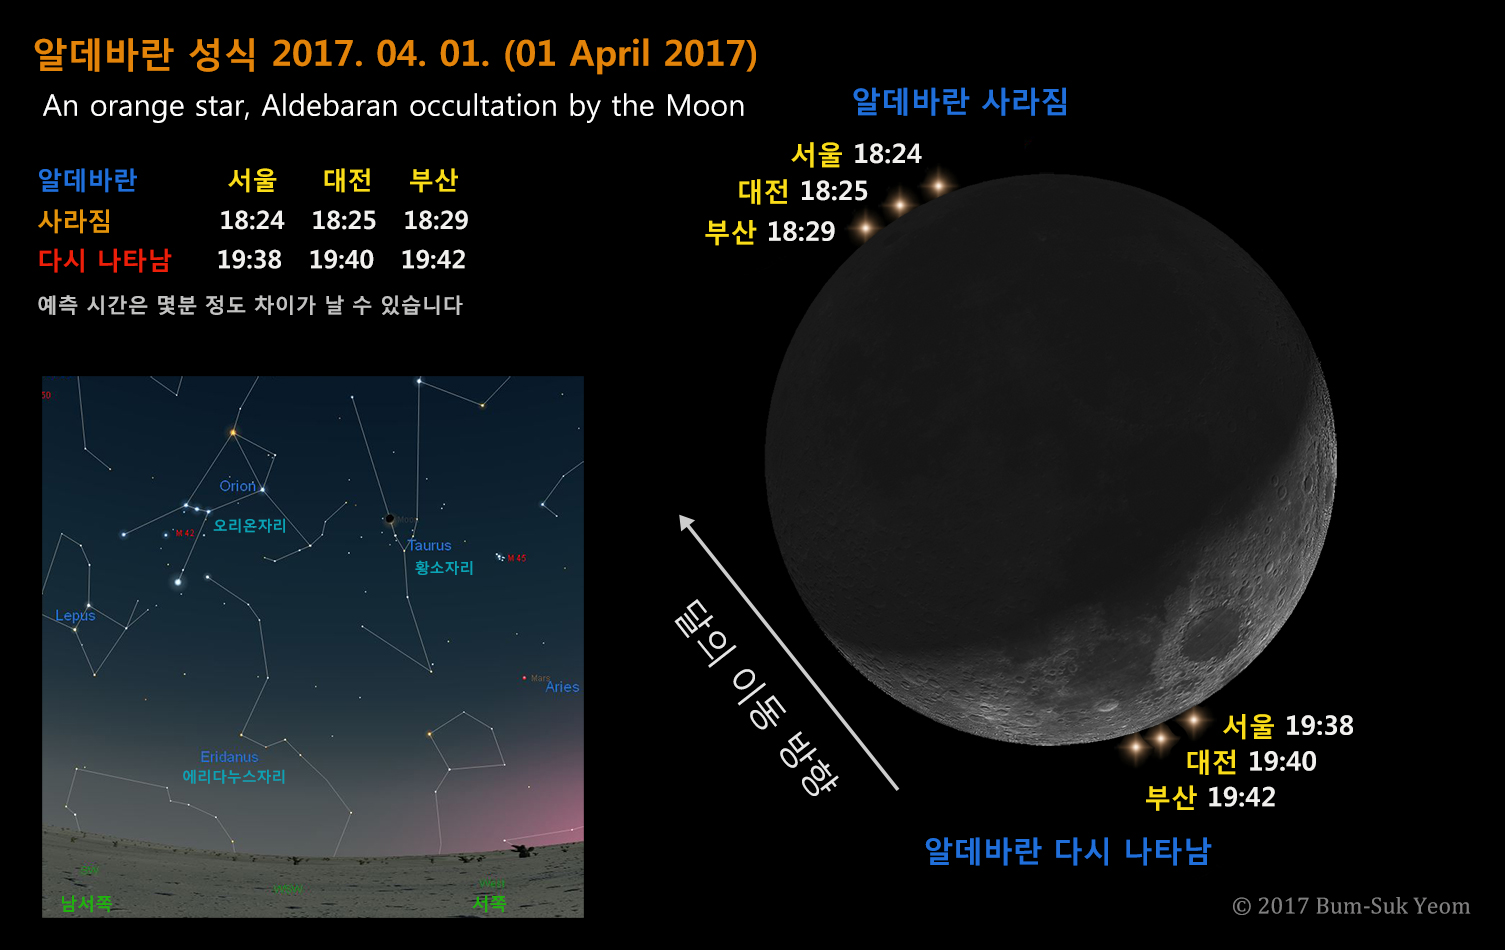 20170401_aldebaran_occultation_prediction_web_bsyeom.jpg